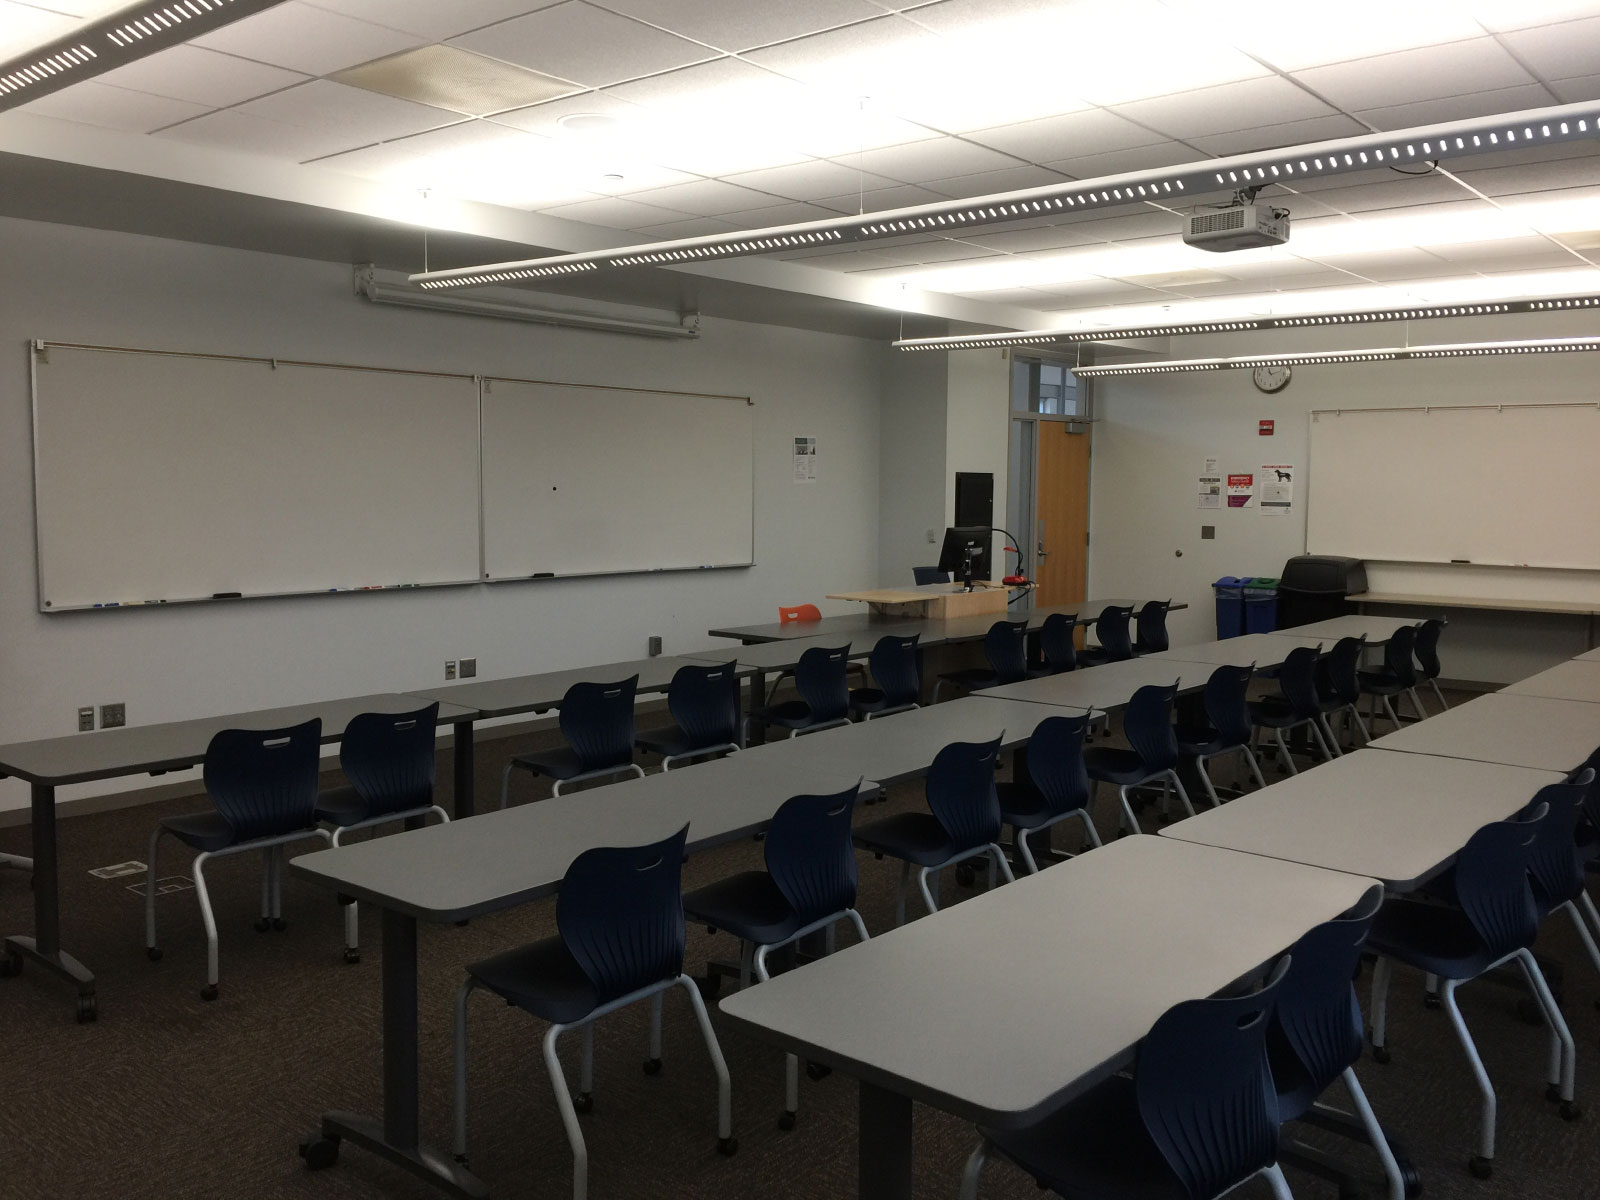 Rows of blue chairs and tables in front of a podium and white board in classroom W210 on the WIlsonville campus